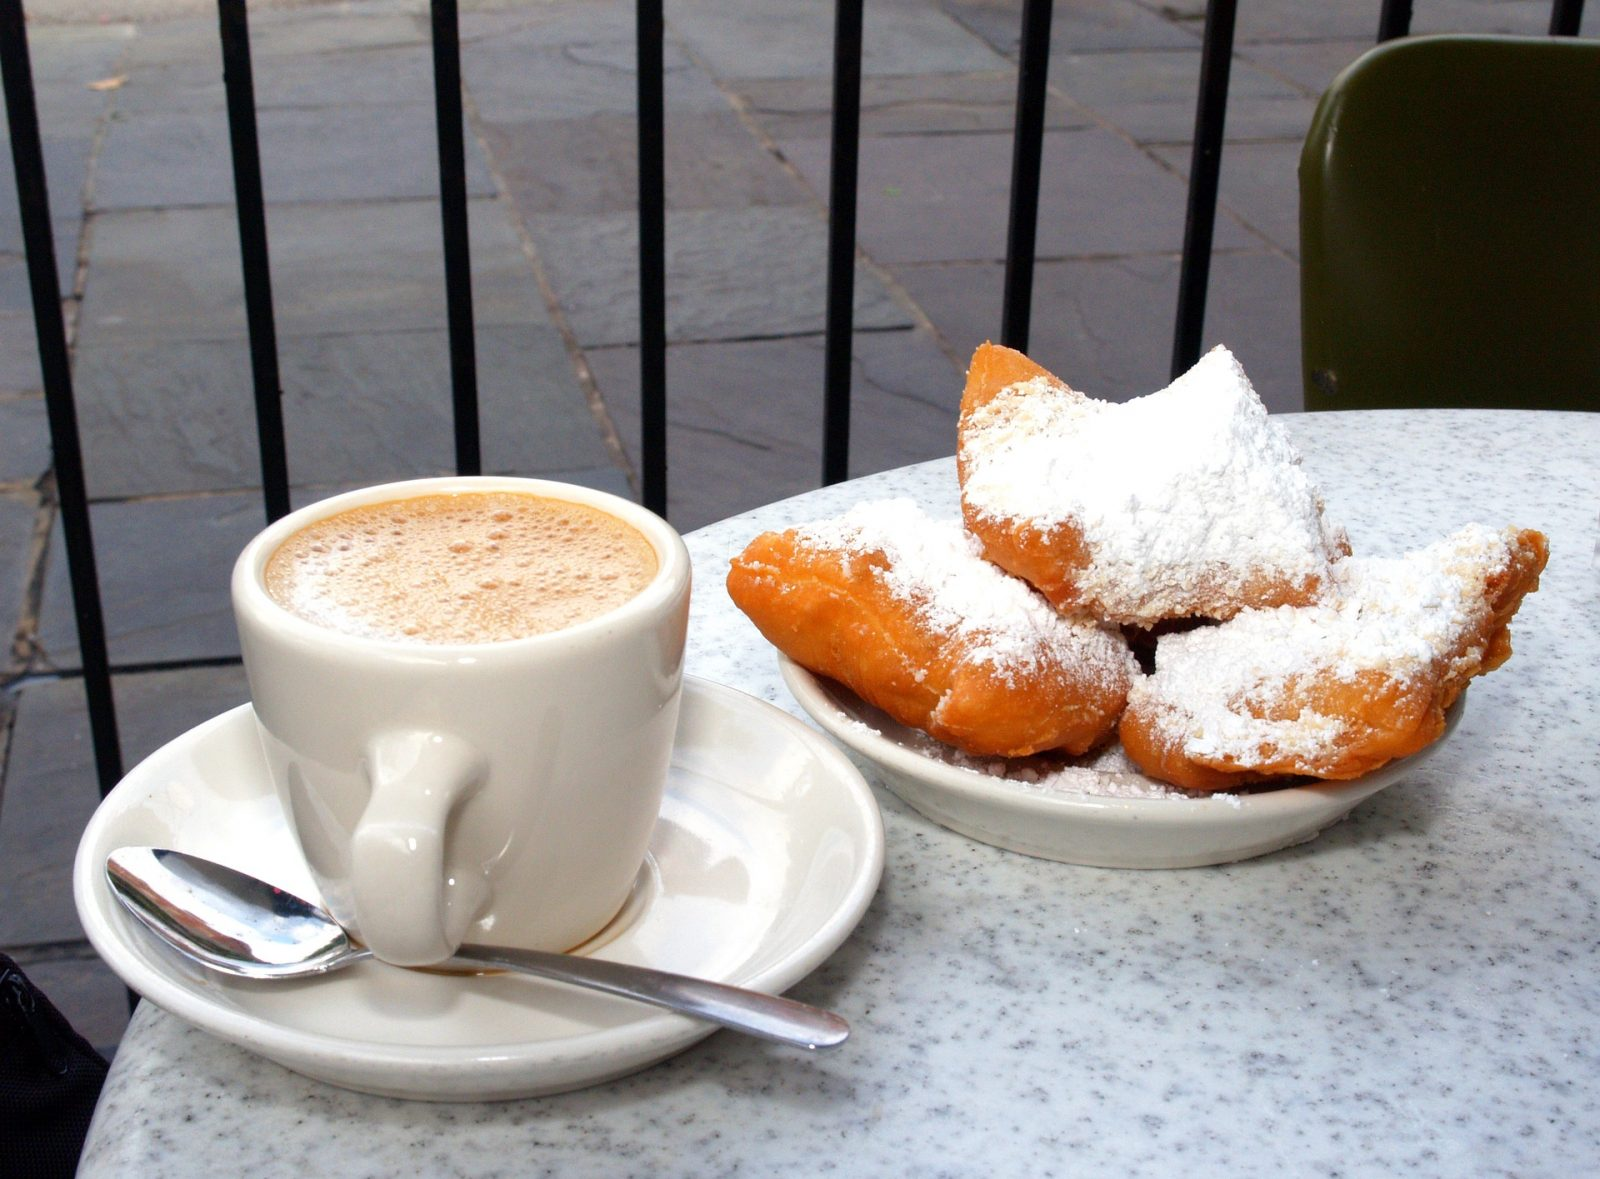 Things to do in New Orleans - Cafe du Monde